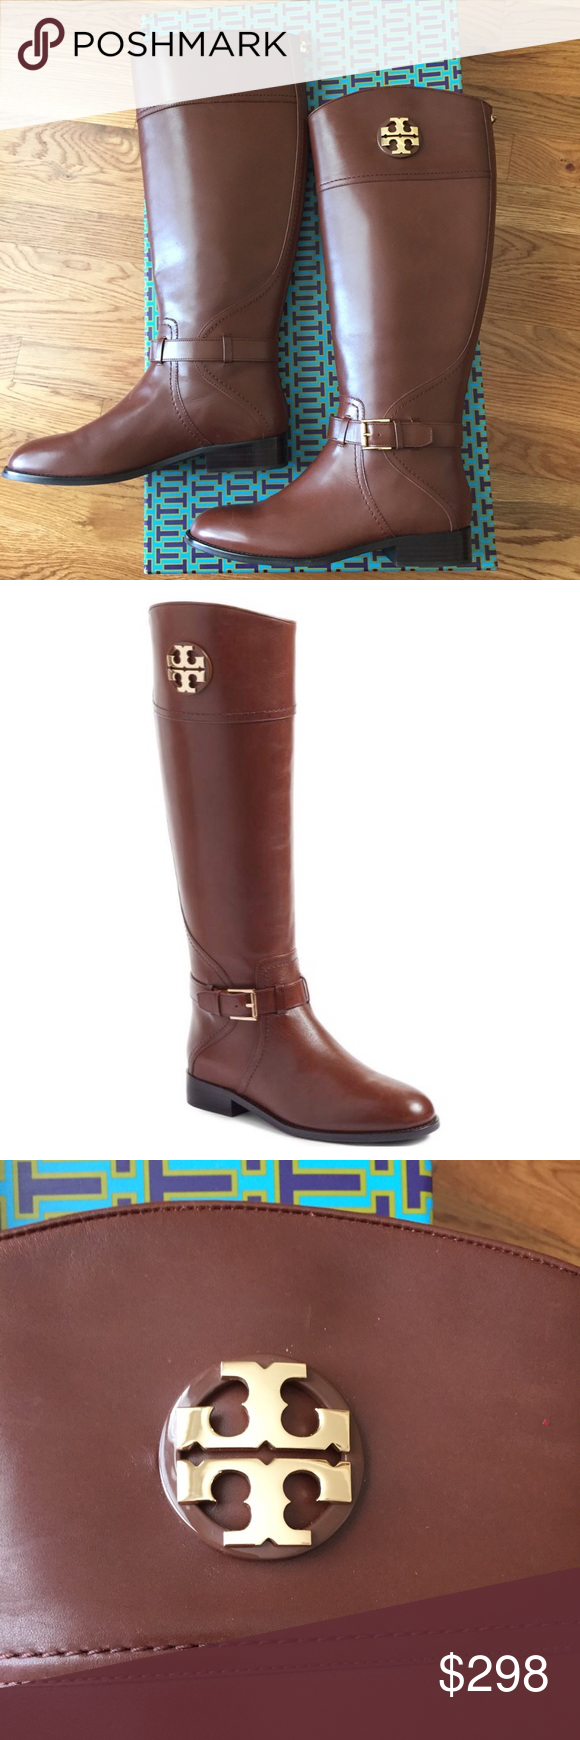 4f426a9863d2 Size 8.5 Tory Burch Adeline Riding Boots NEW Genuine Tory Burch Adeline  Riding Boots in Almond